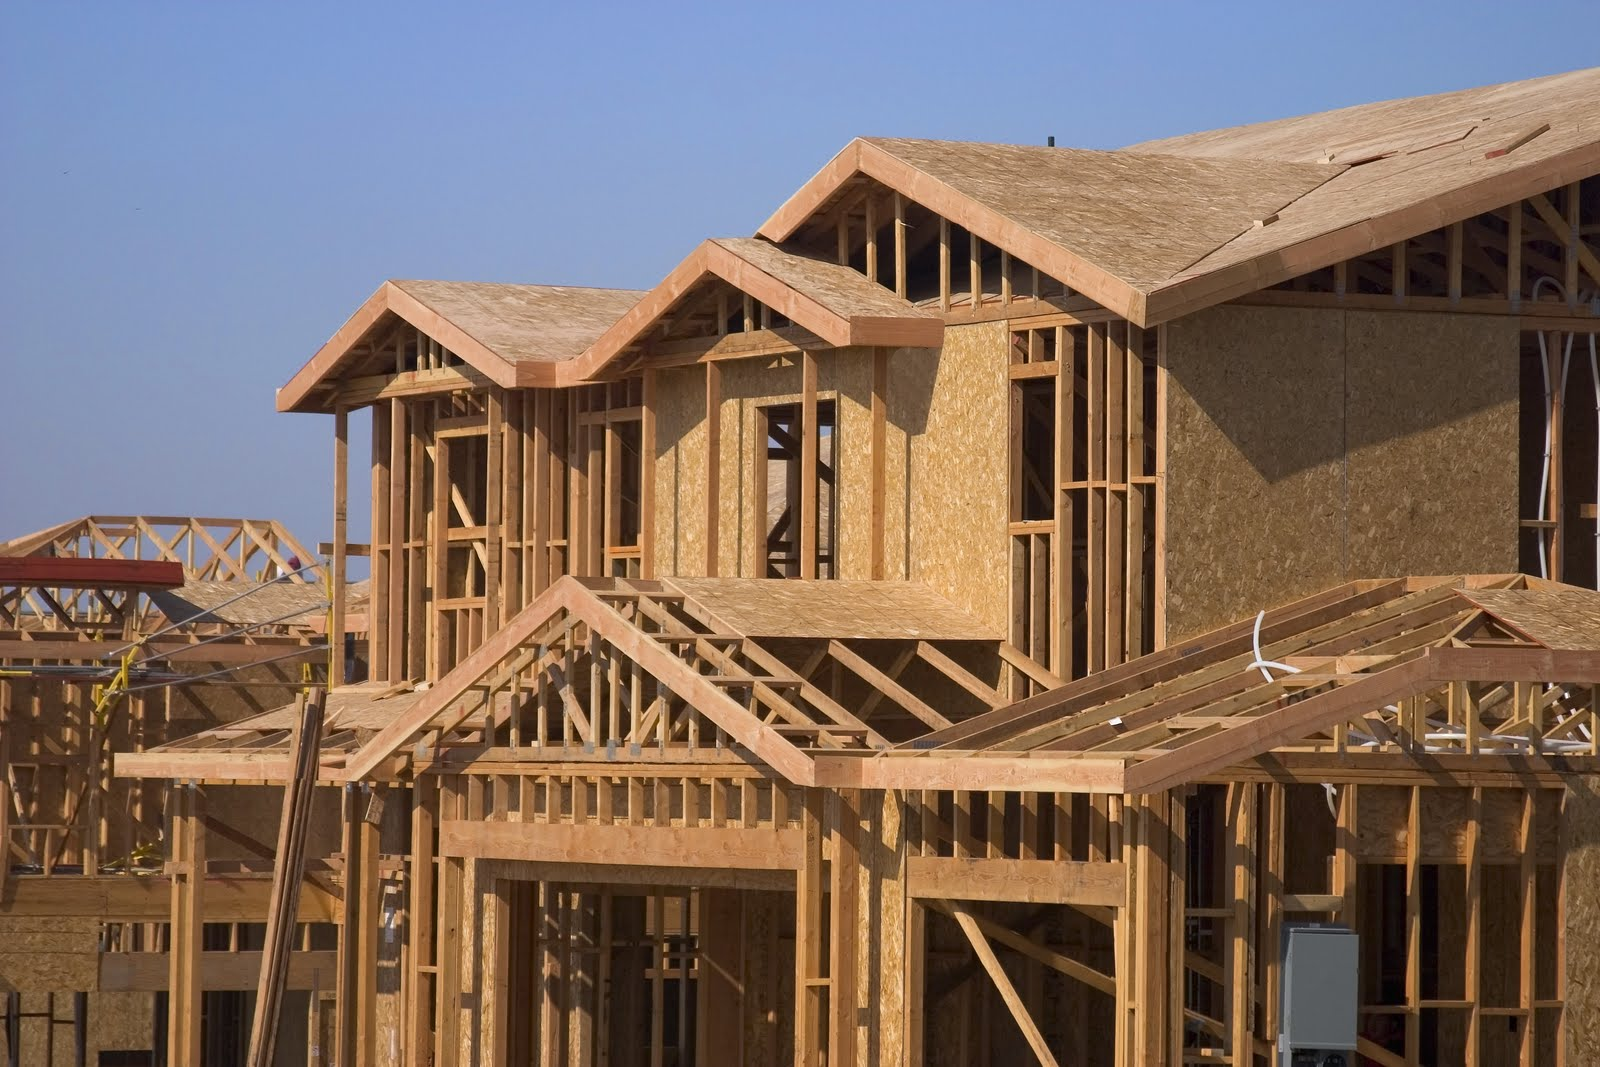 New Residential Construction Activity